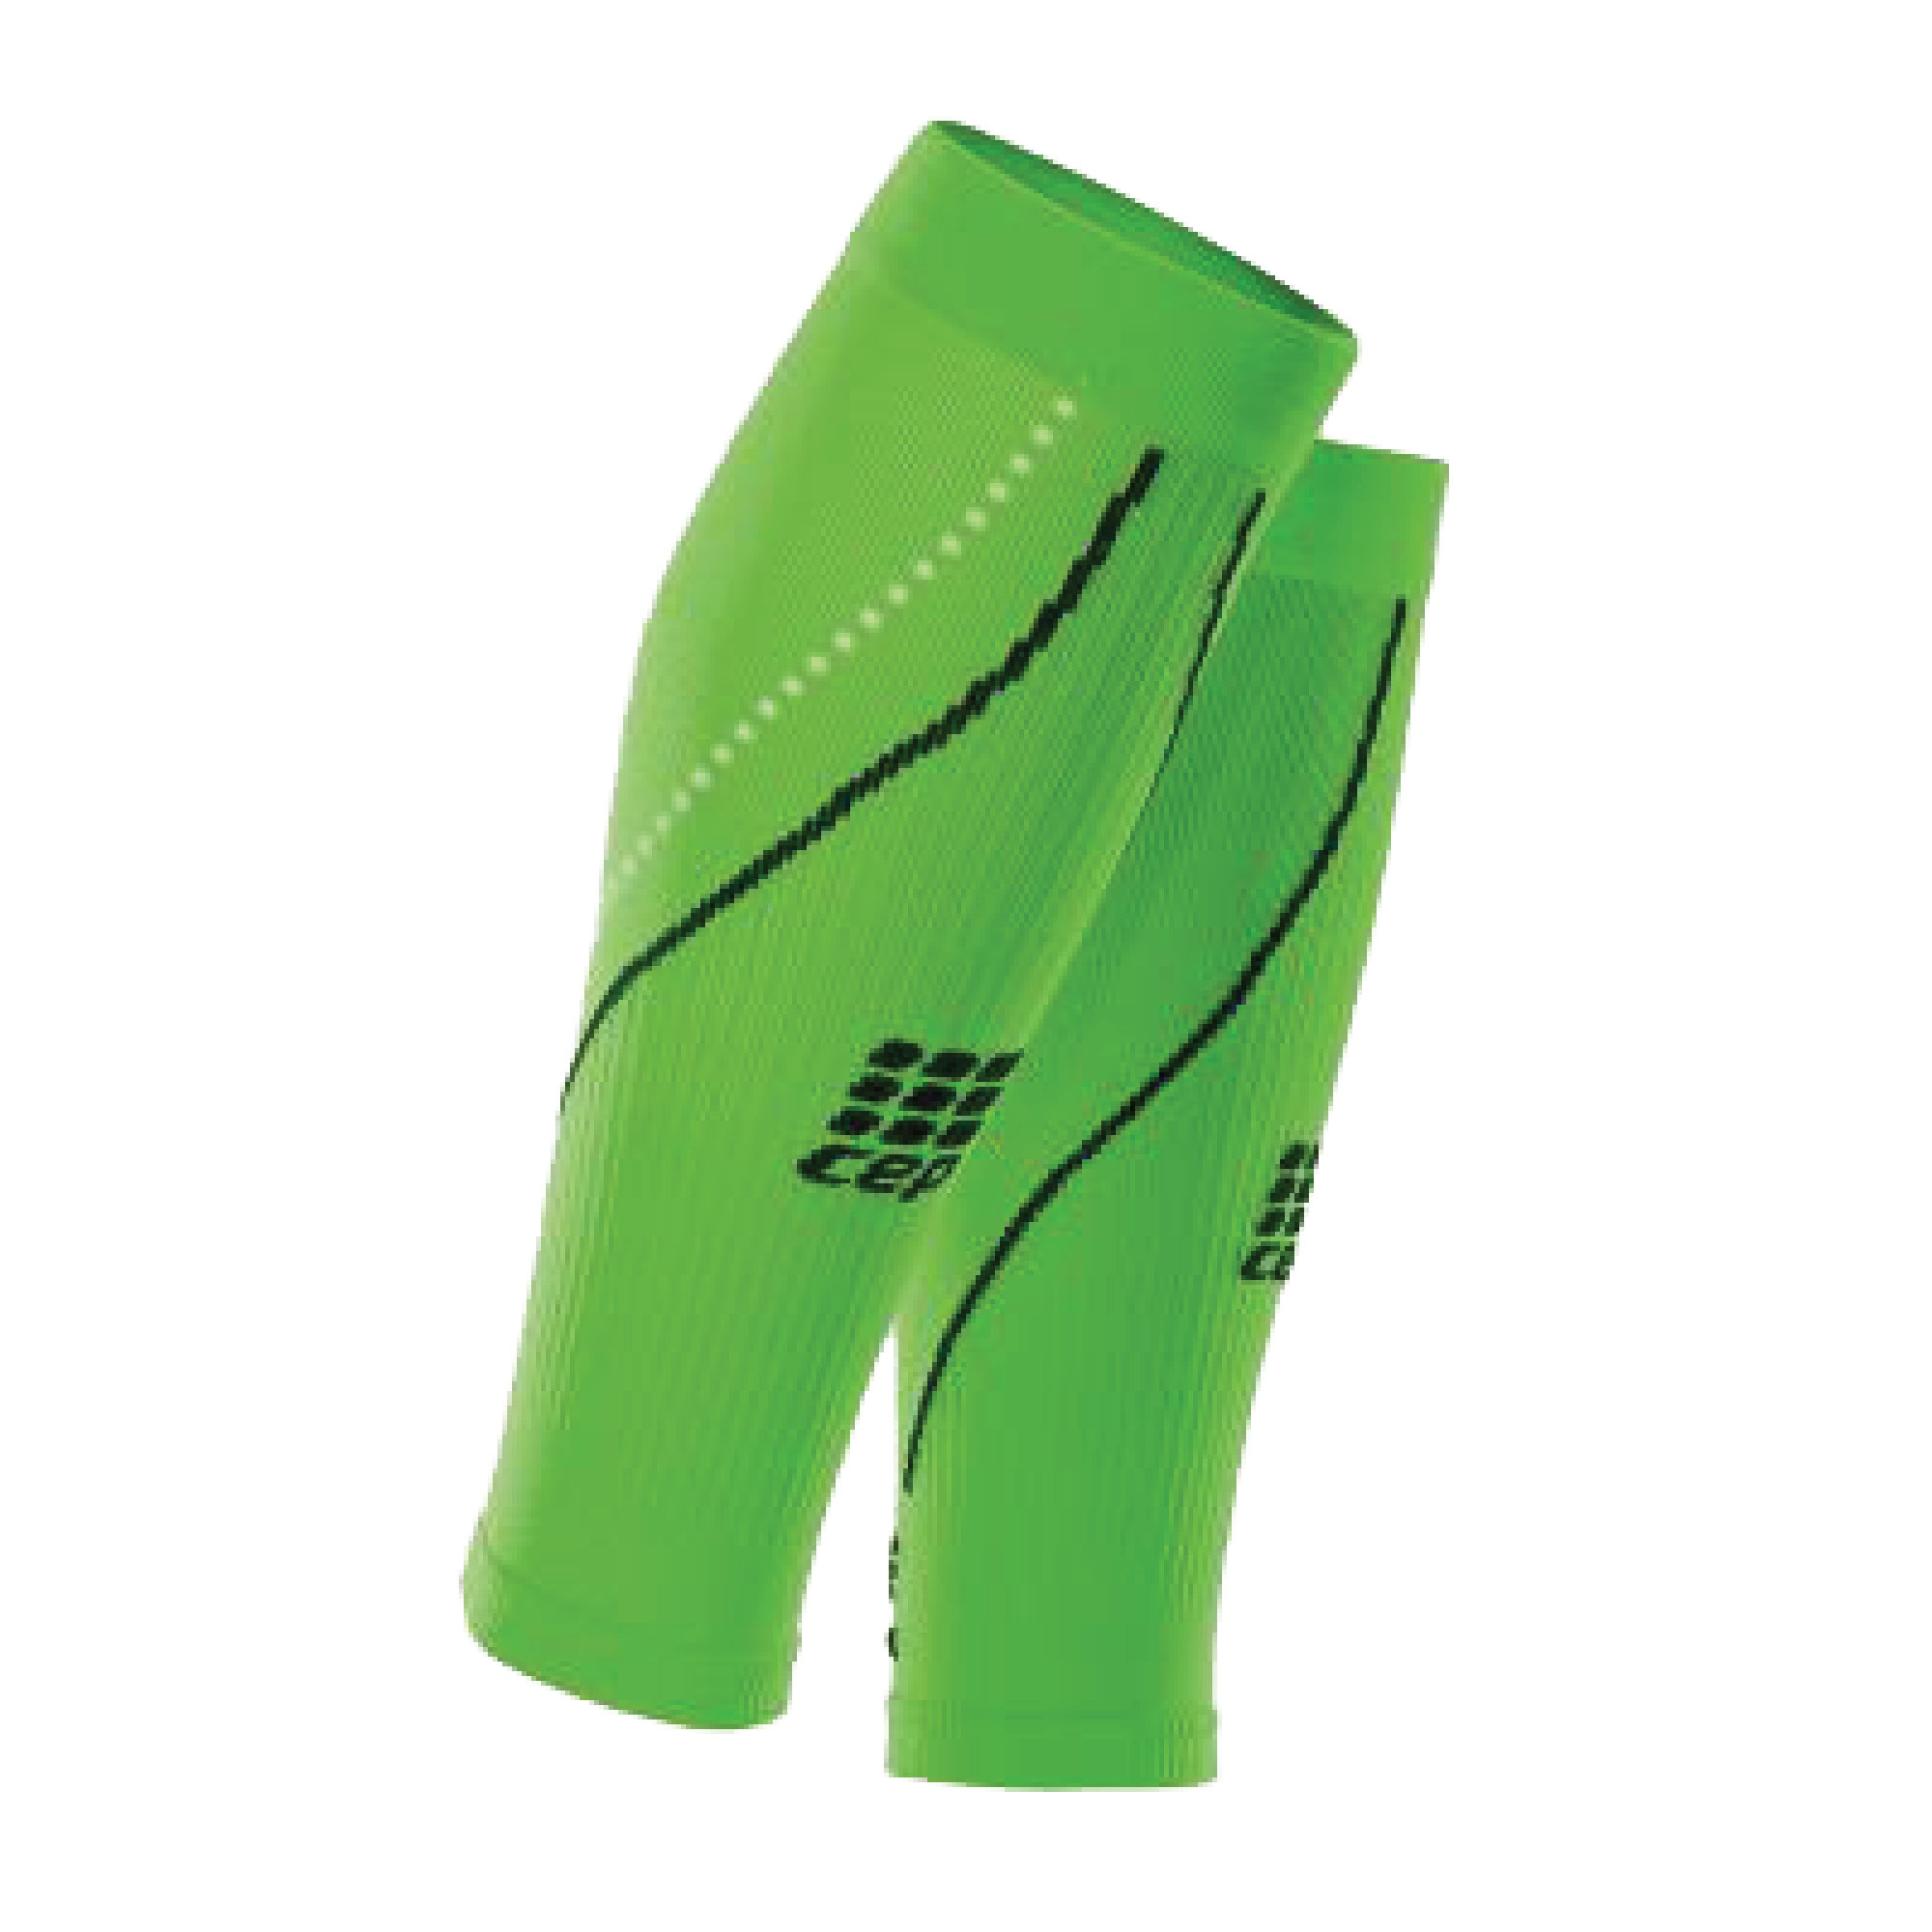 NIGHT CALF SLEEVES 2.0 | WOMEN